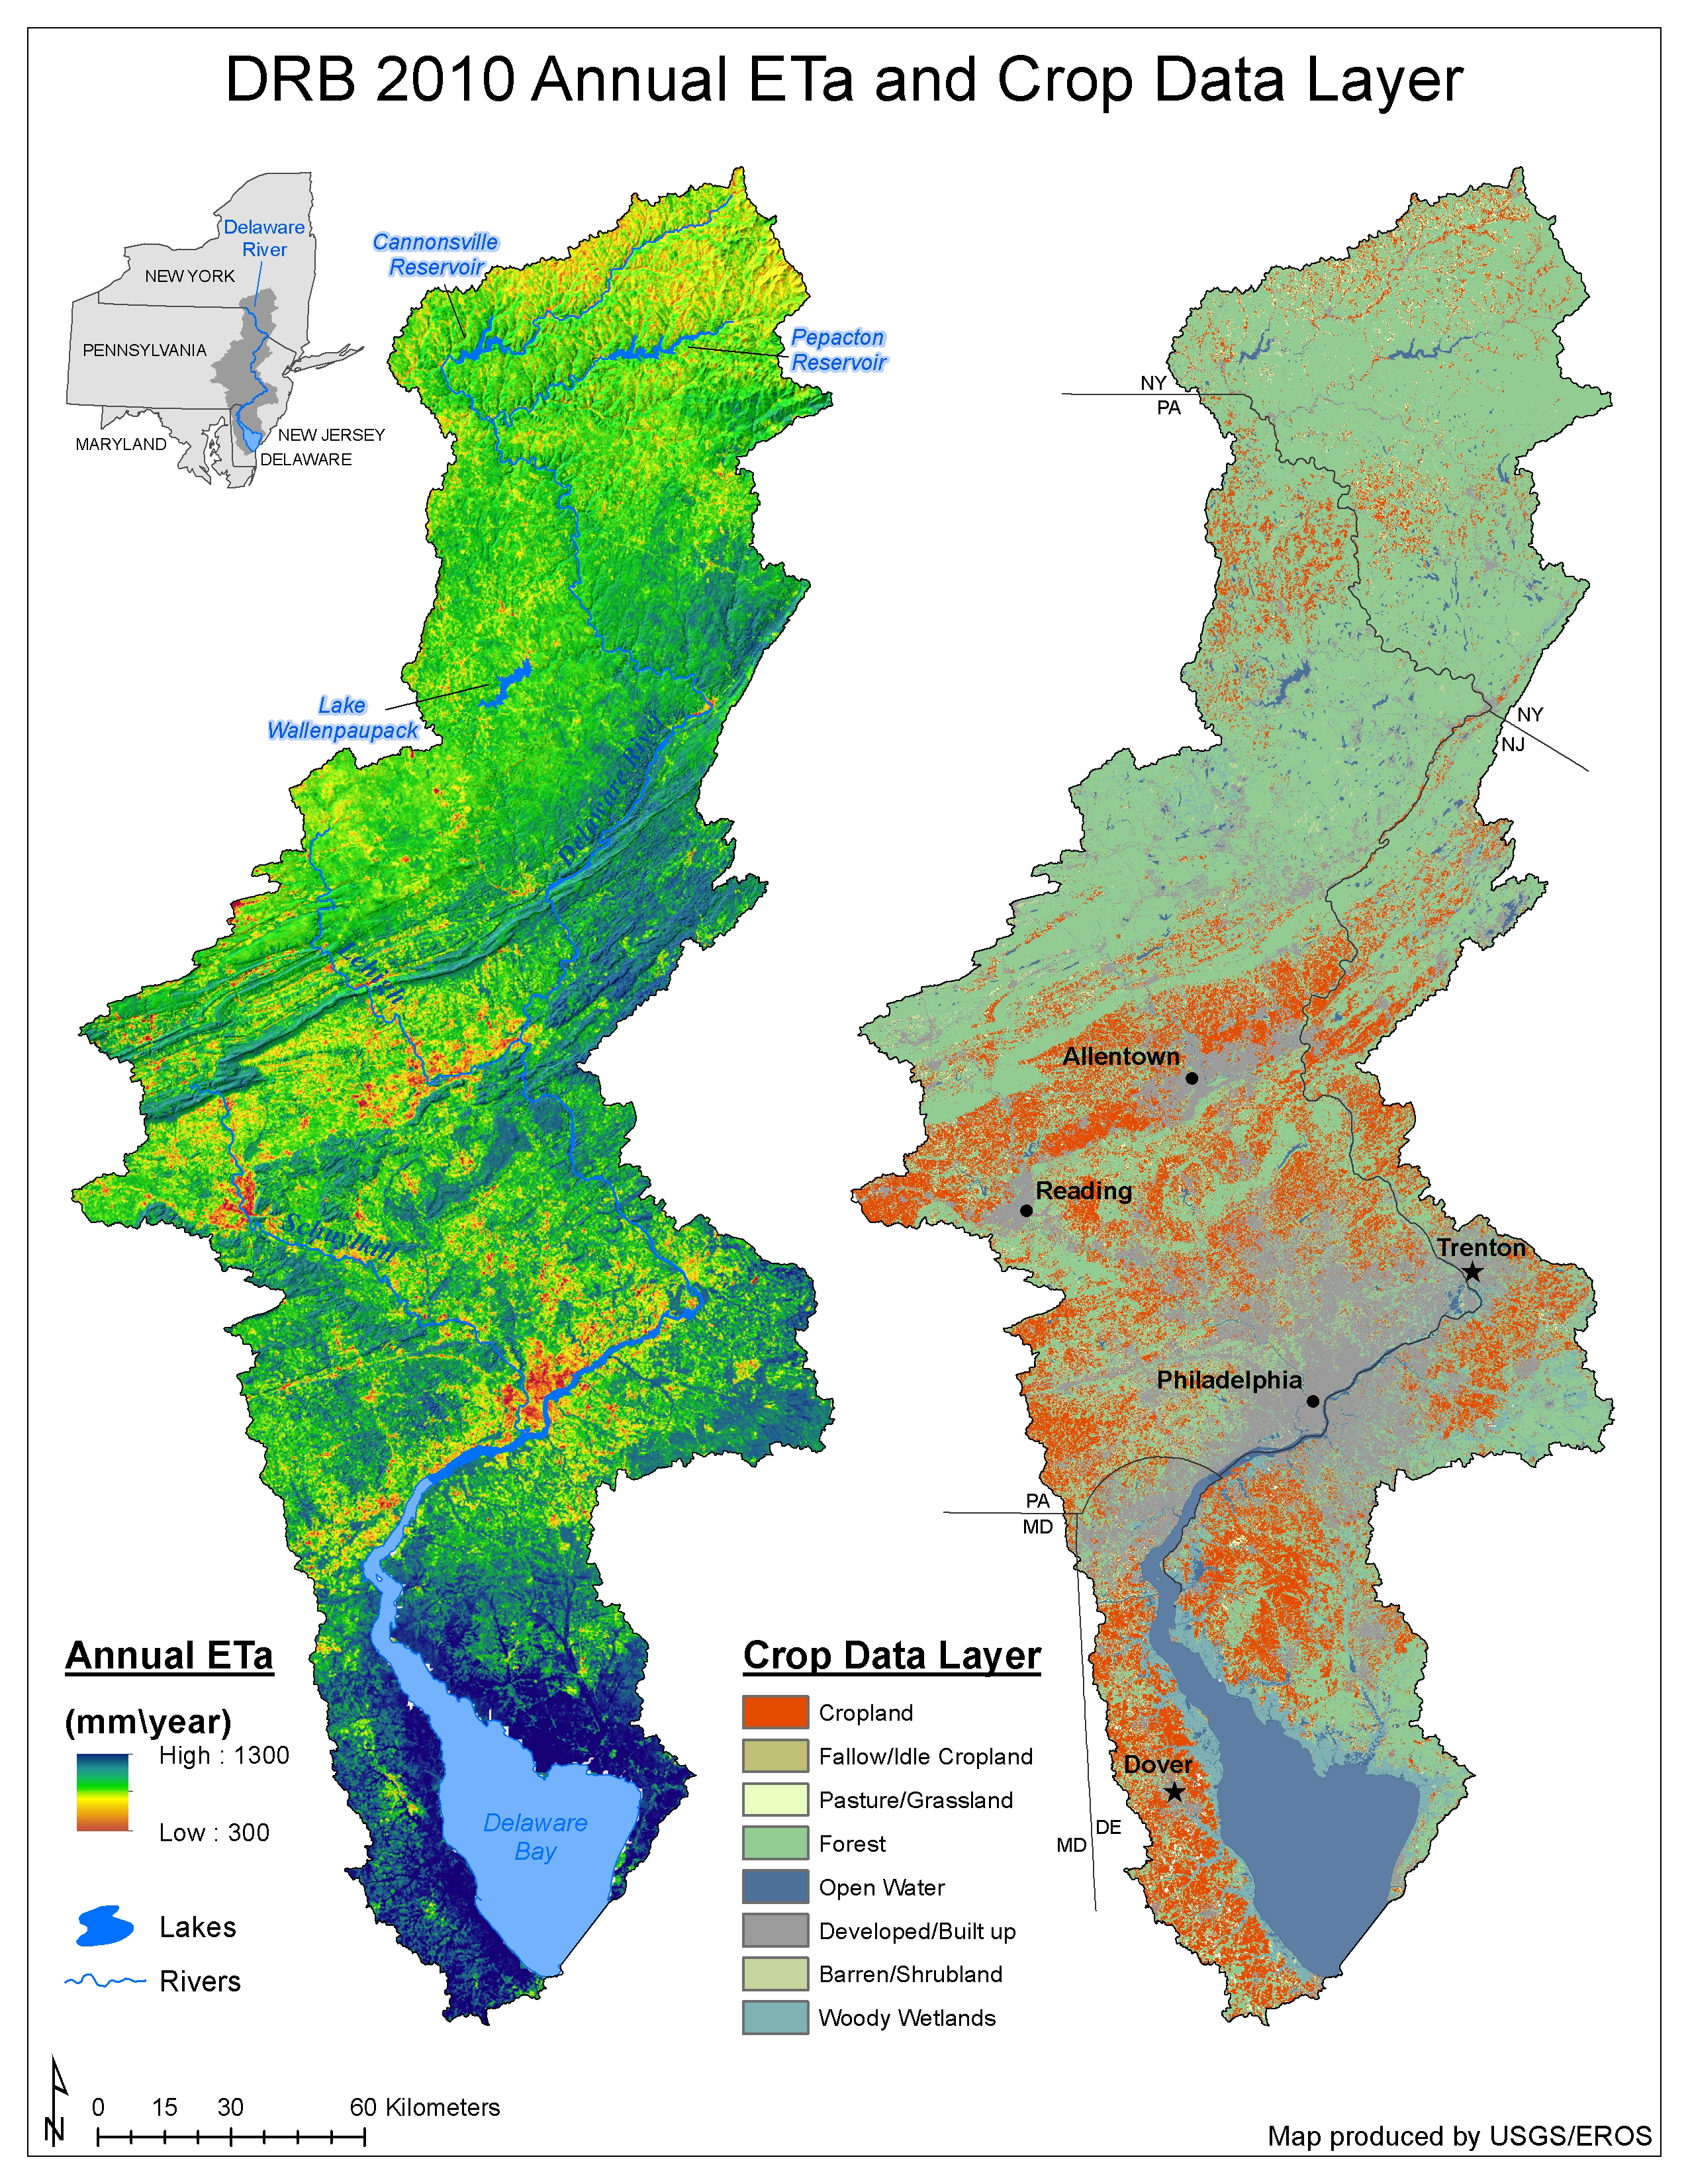 Annual evapotranspiration map and a crop data layer for 2010 in the Apalachicola-Chattahoochee-Flint River Basin.